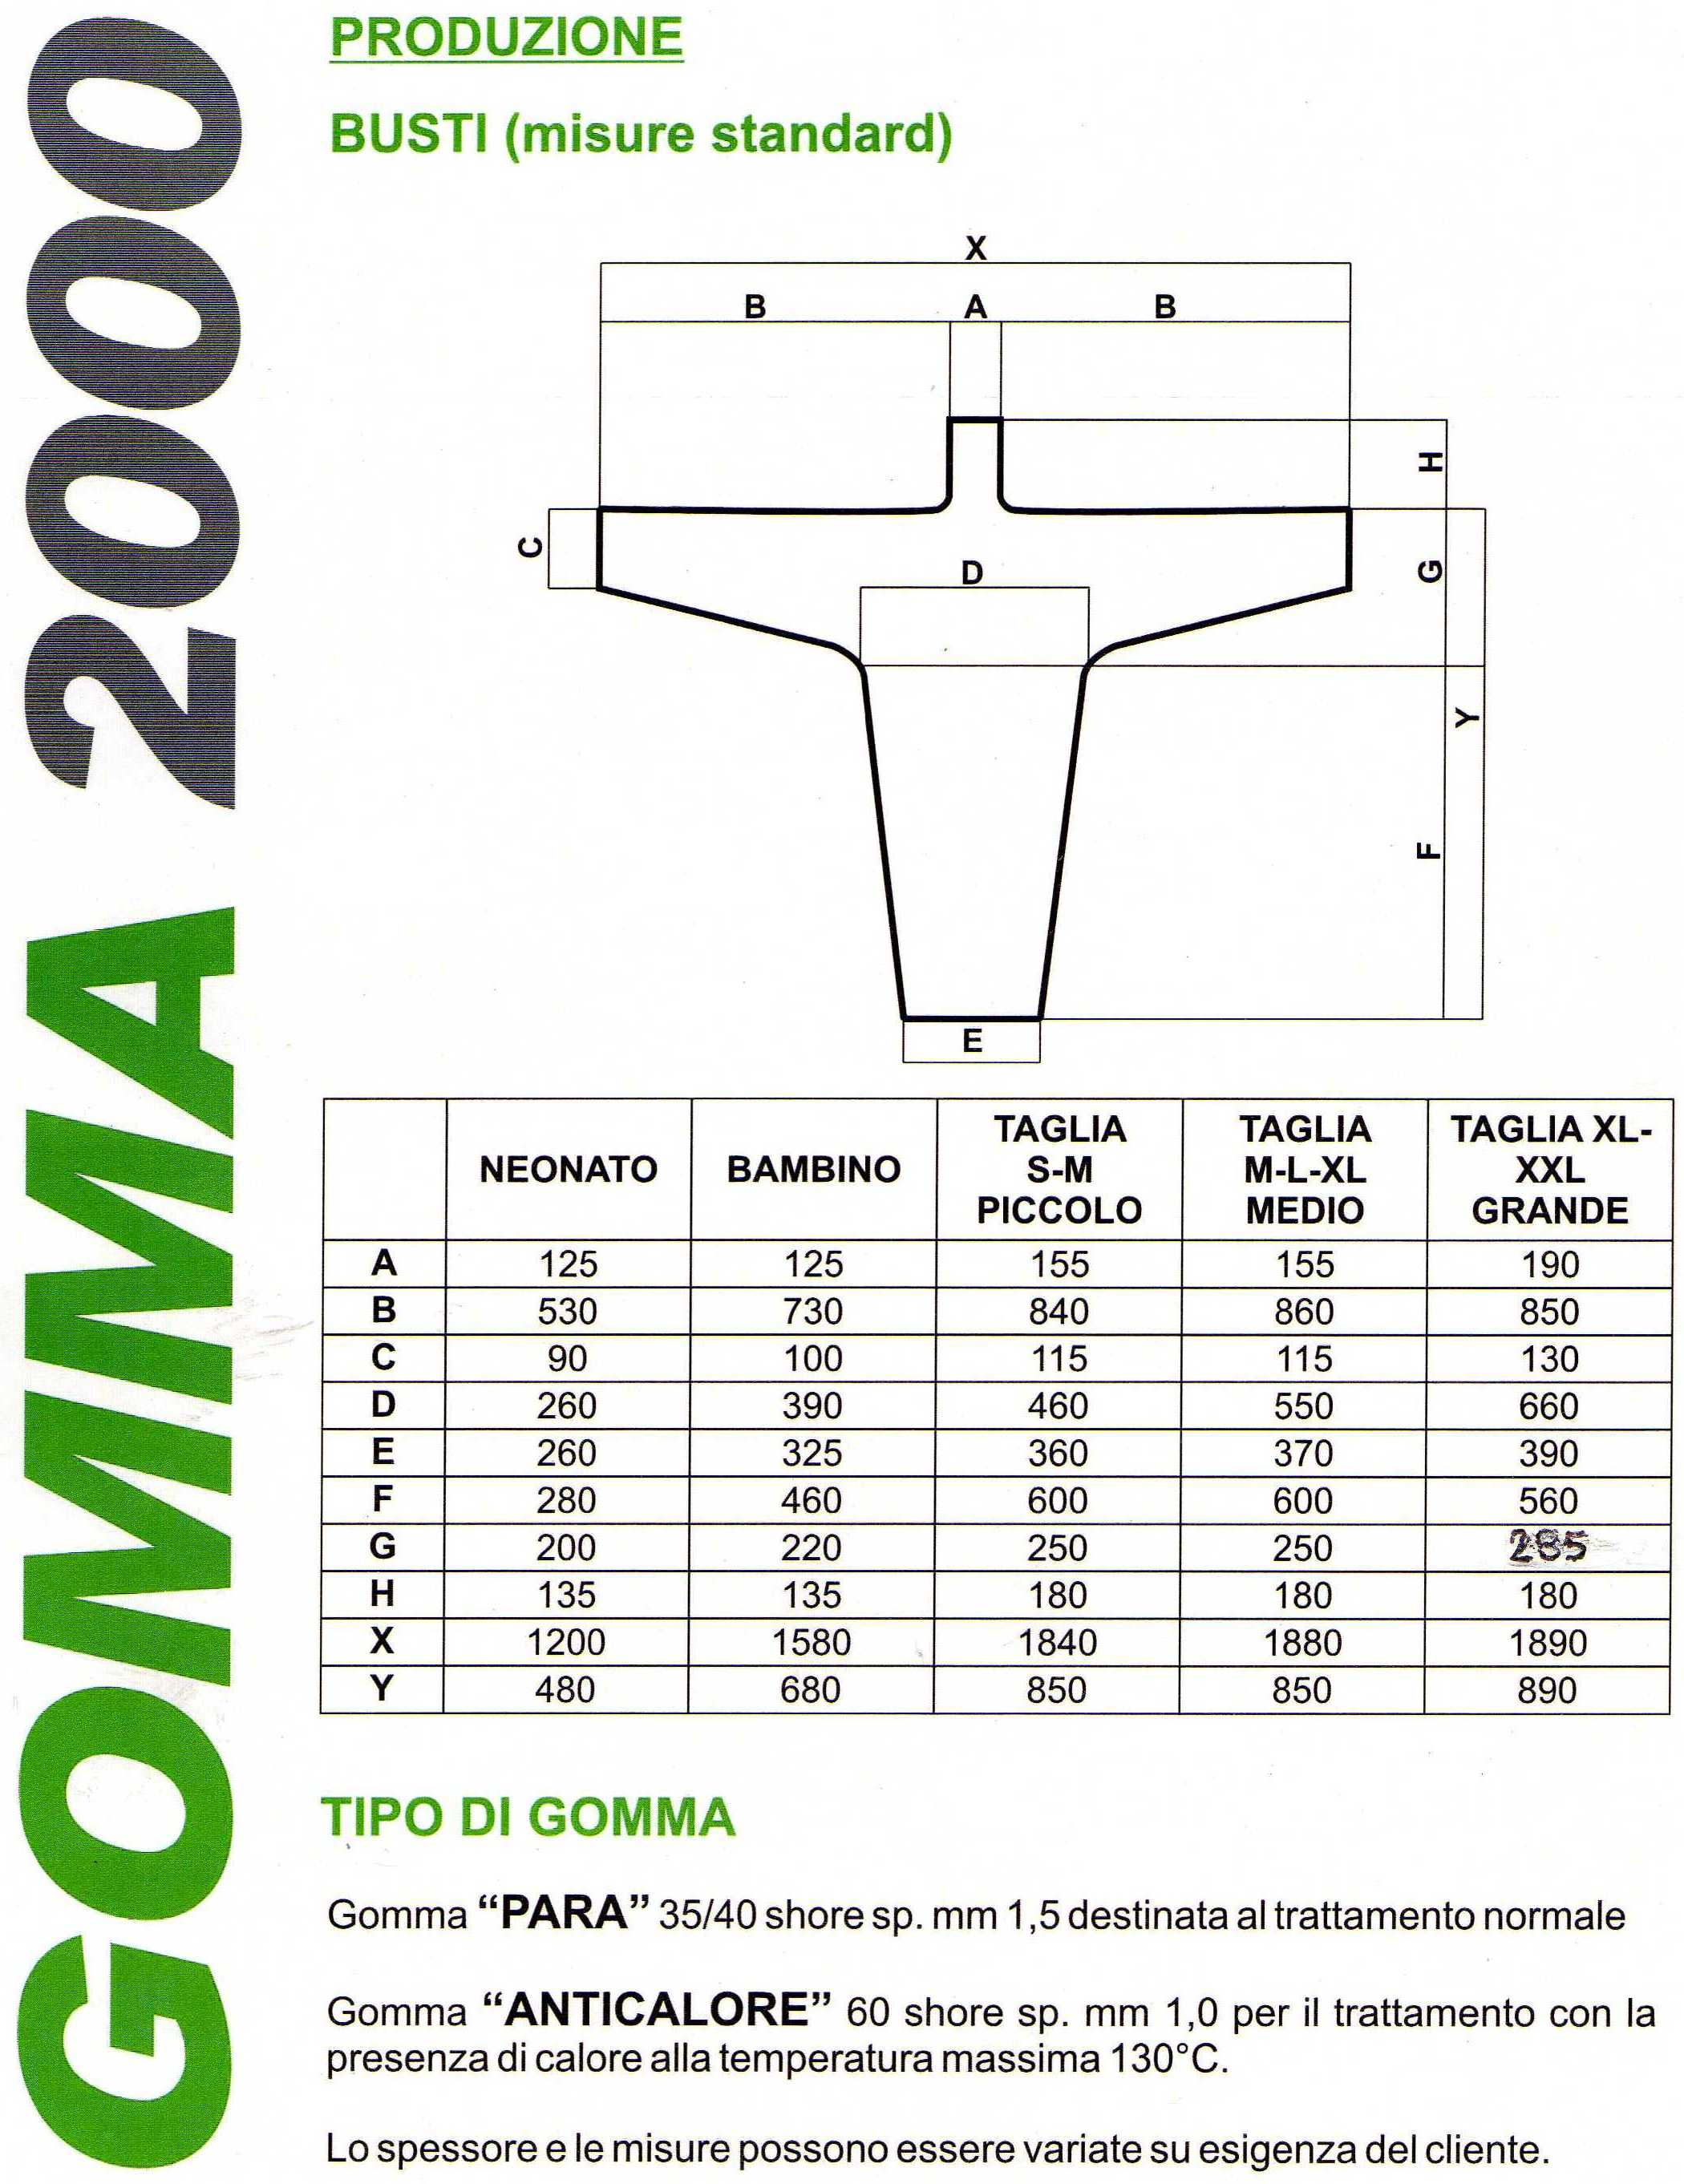 Busto in gomma naturale 40 shore sp. mm 1,5